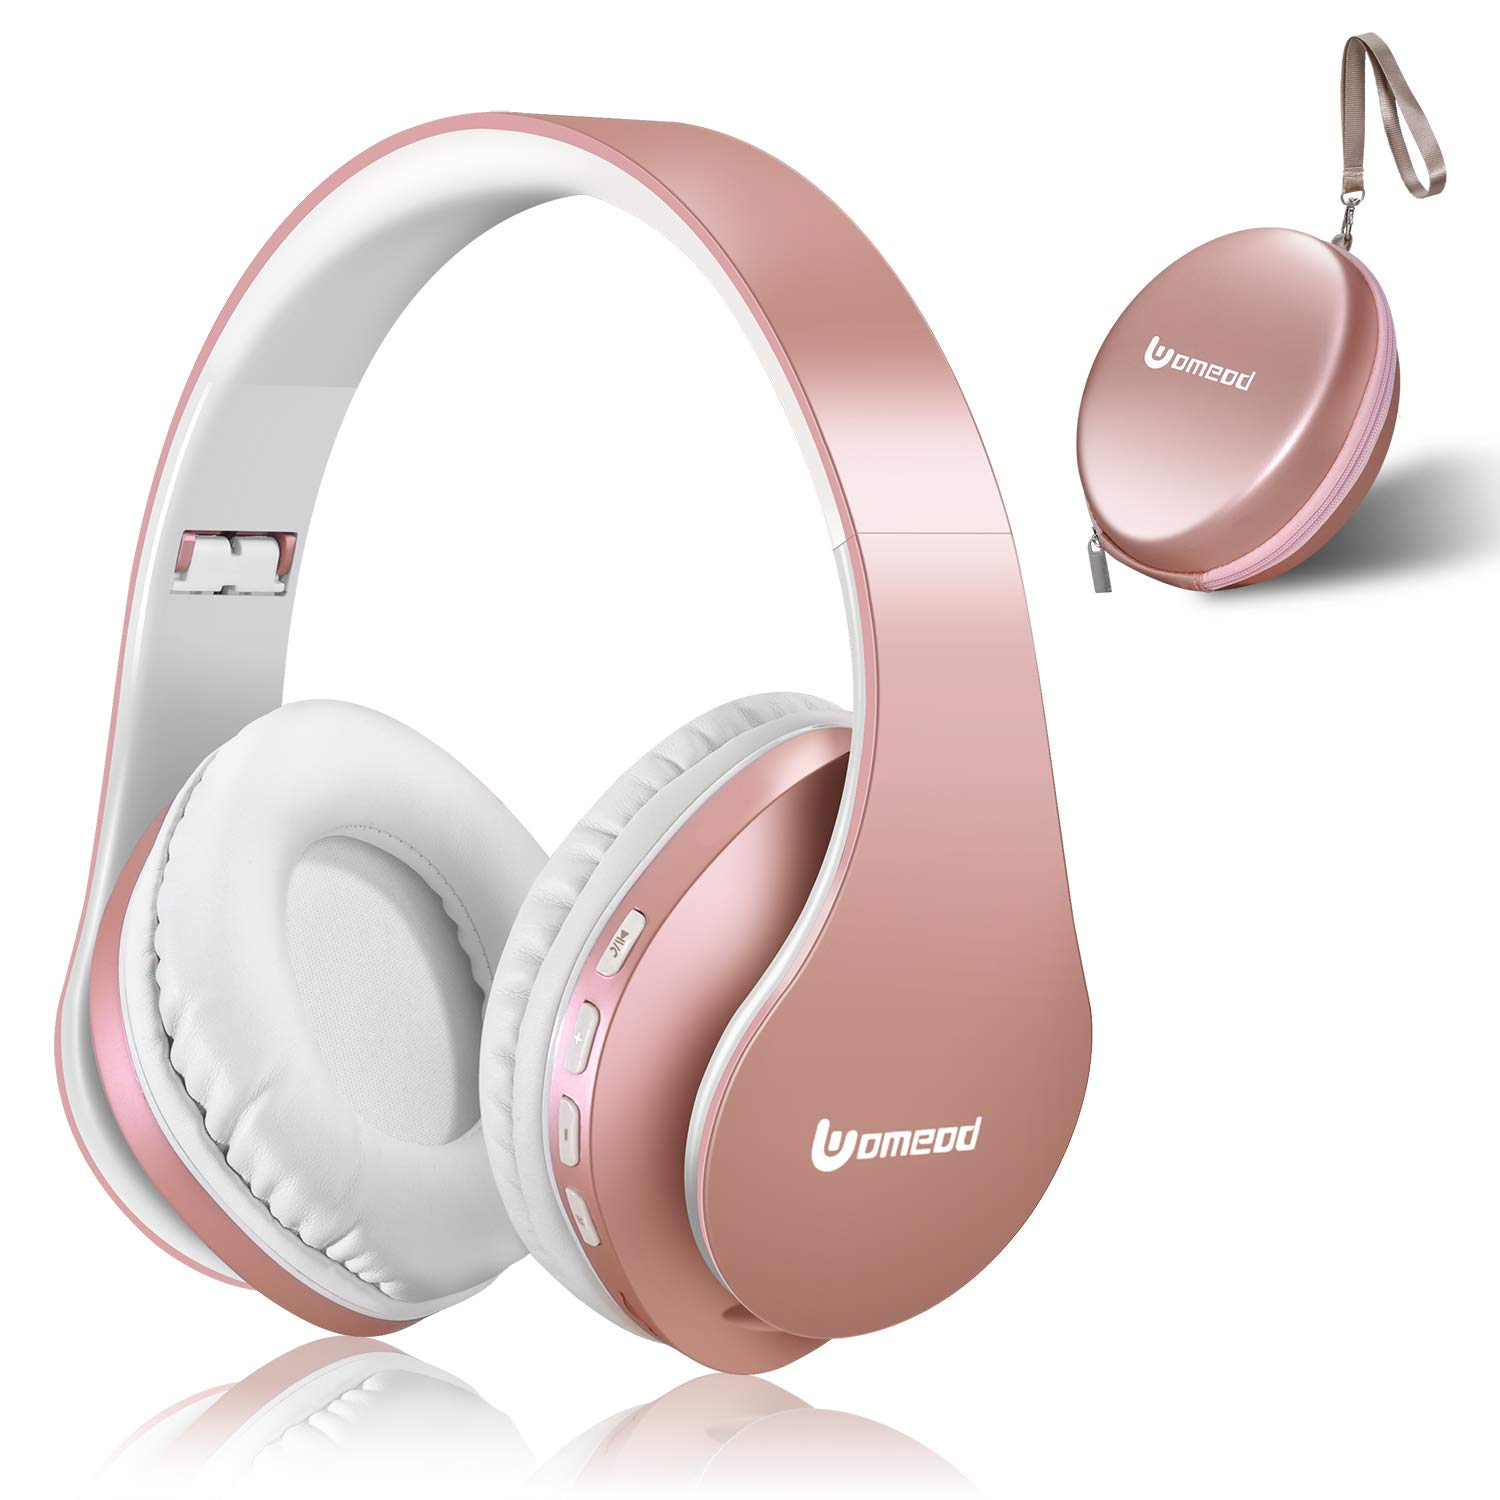 Bluetooth Headphones Wireless, Uomeod Over Ear Stereo Headset V5.0 with Microphone, Foldable & Lightweight, Support Tf Card MP3 and FM Radio for Cellphones Laptop TV (Rose Gold)